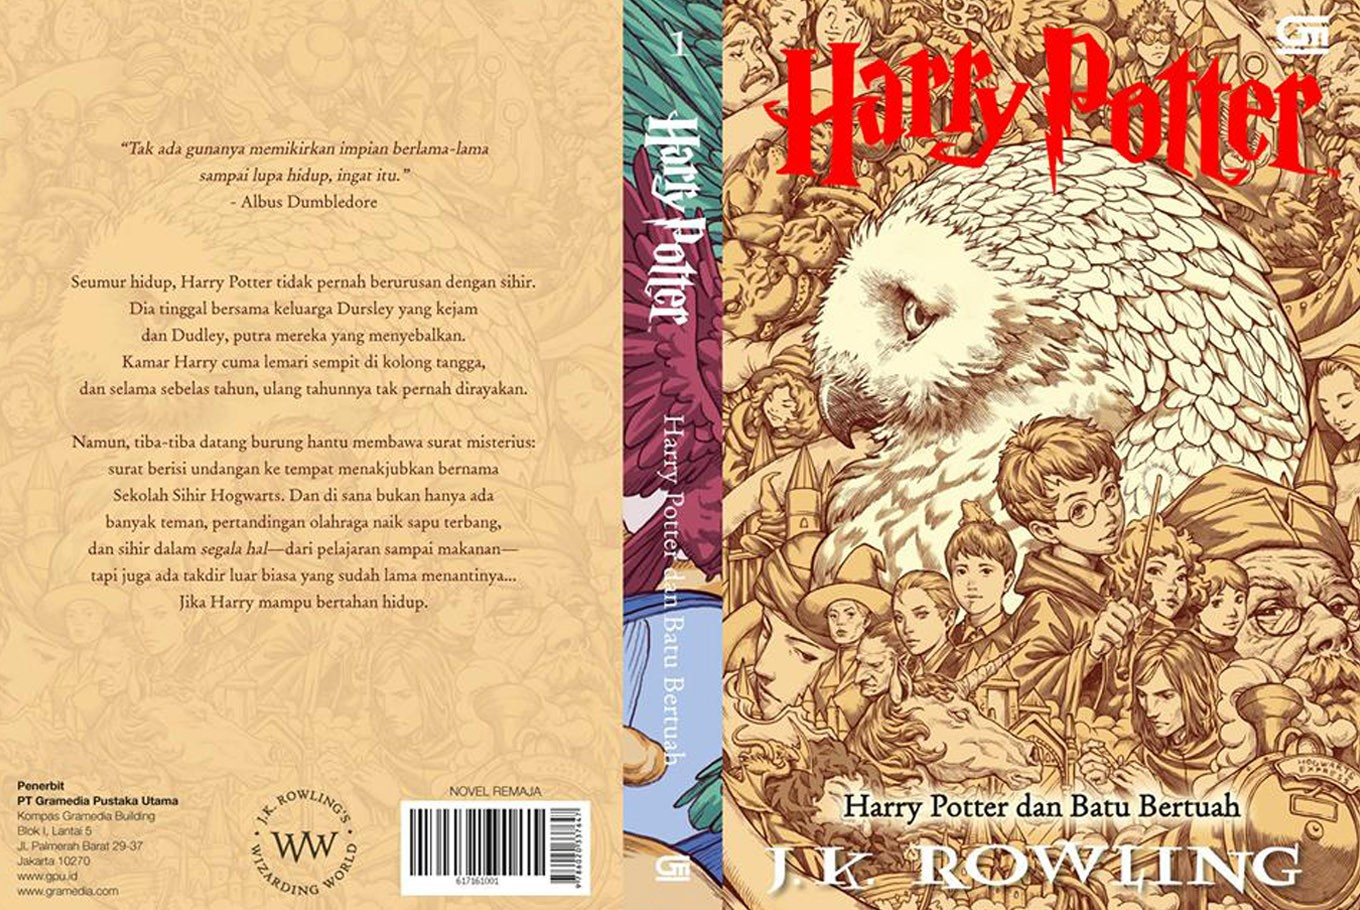 Harry Potter Book Cover Country : Indonesia to have own version of 'harry potter book cover